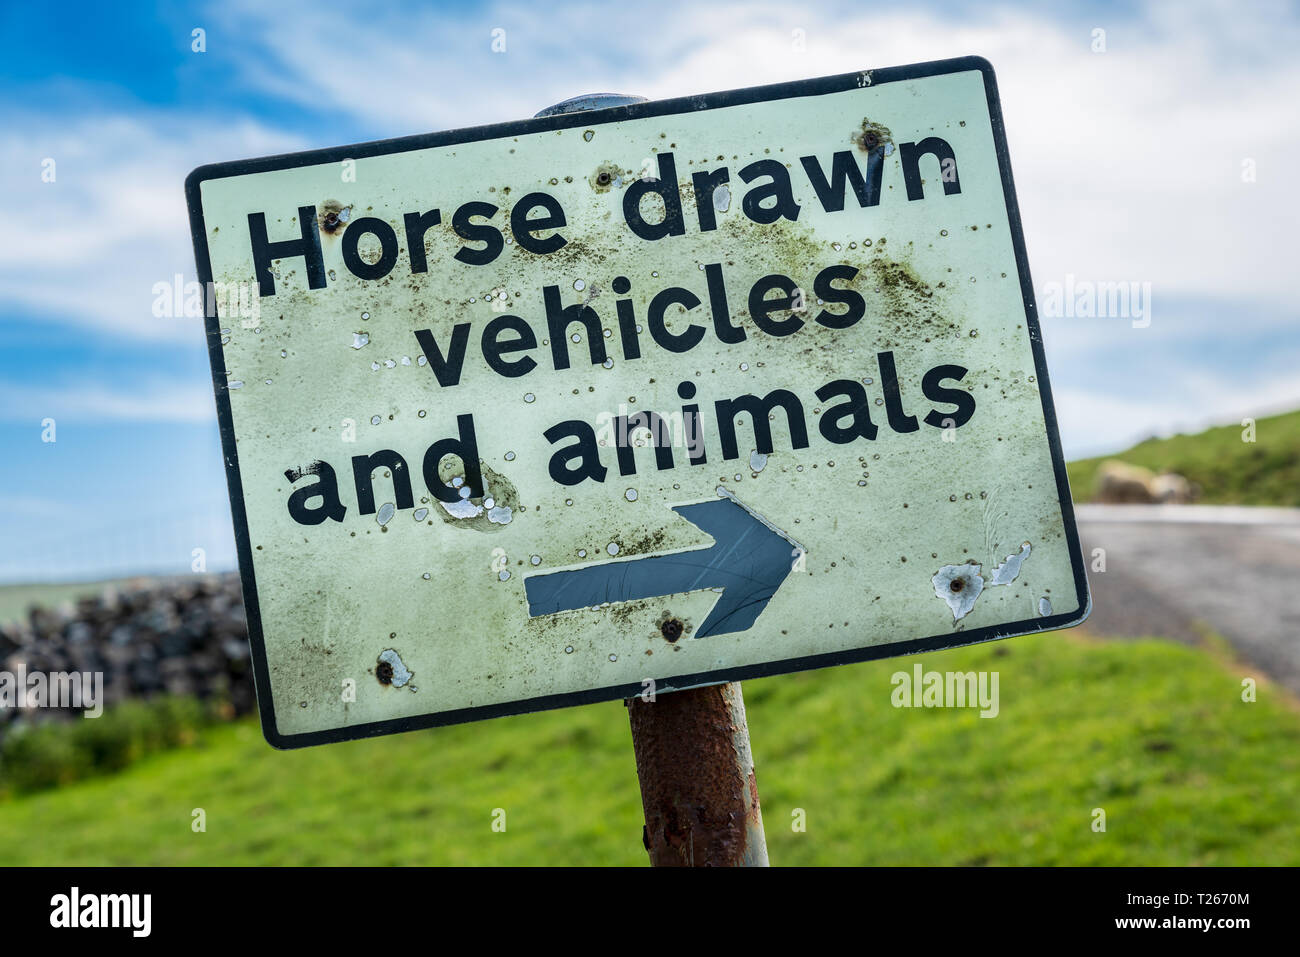 Sign: Horse drawn vehicles and animals - with some sheep in the background, seen near Halton Gill, North Yorkshire, England, UK - Stock Image